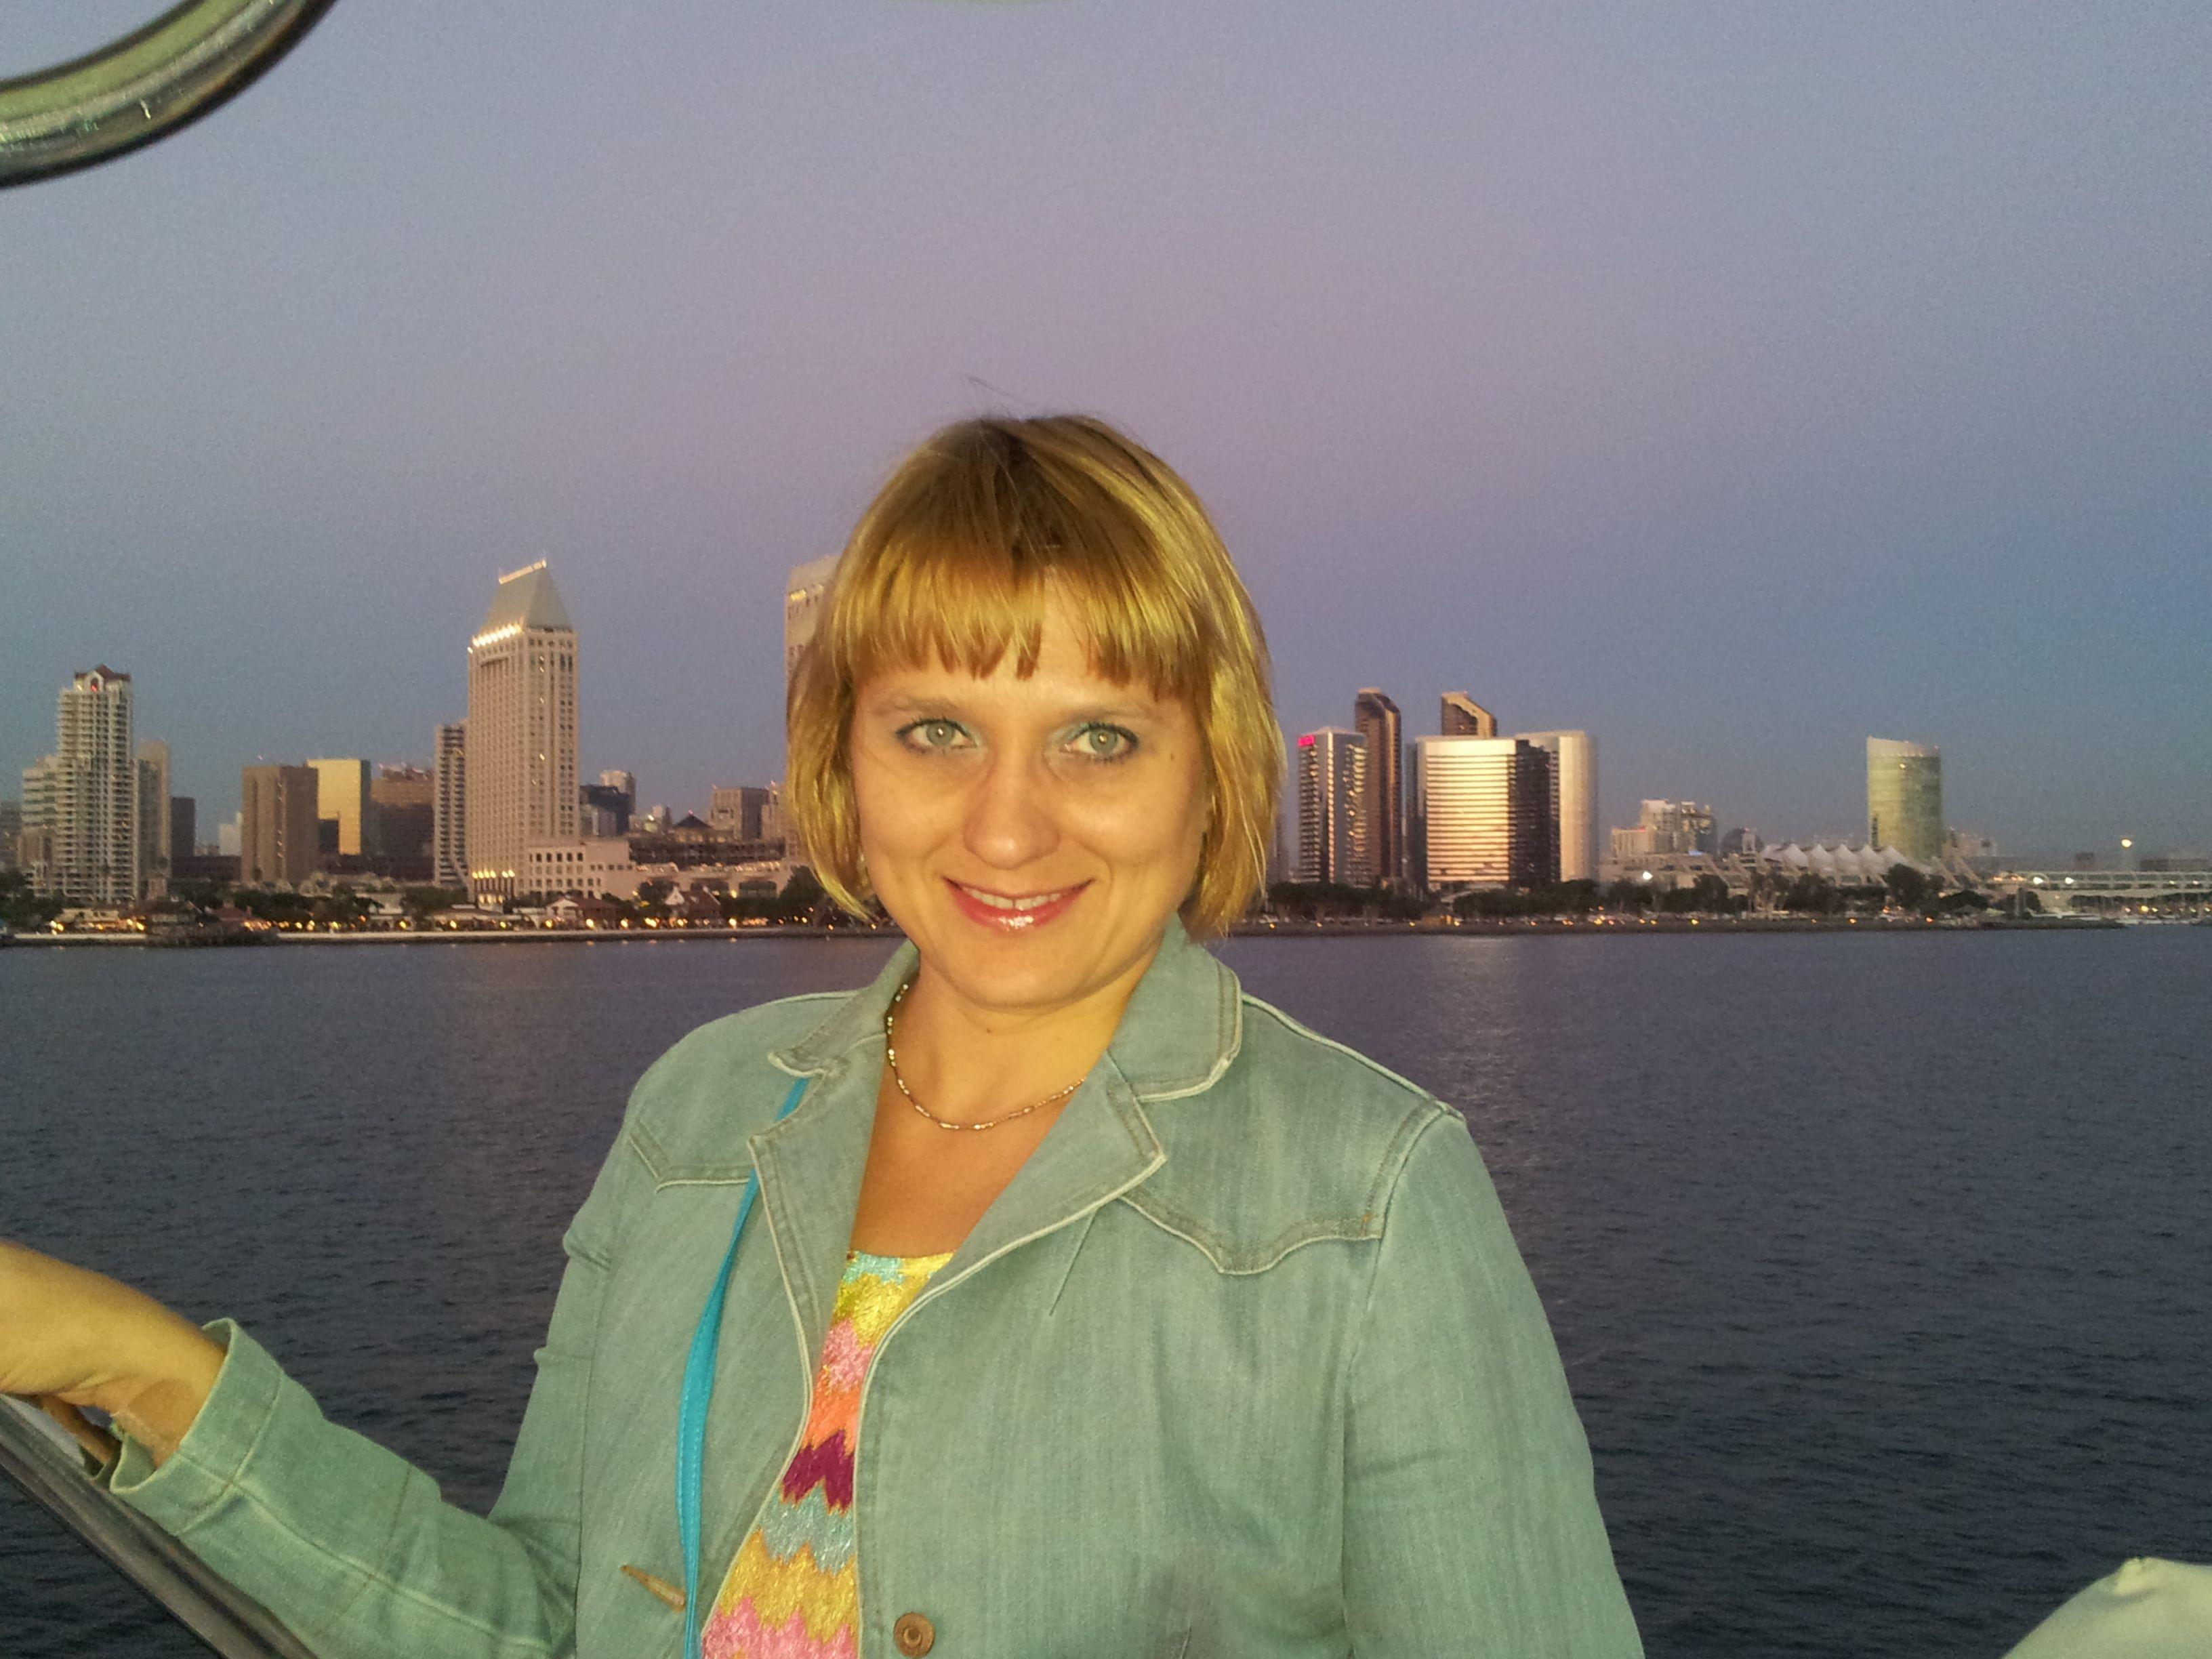 Over 50 dating in san diego